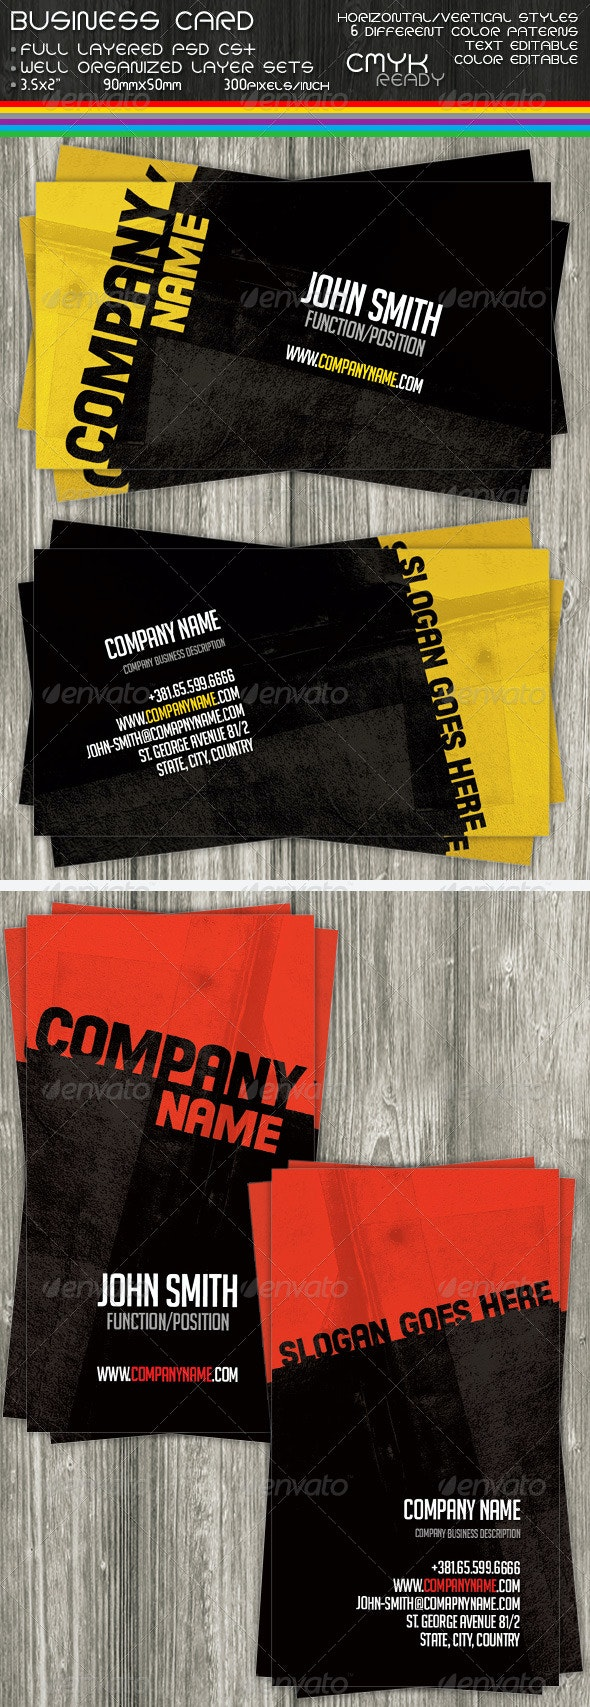 Company Business Cards - Grunge Business Cards